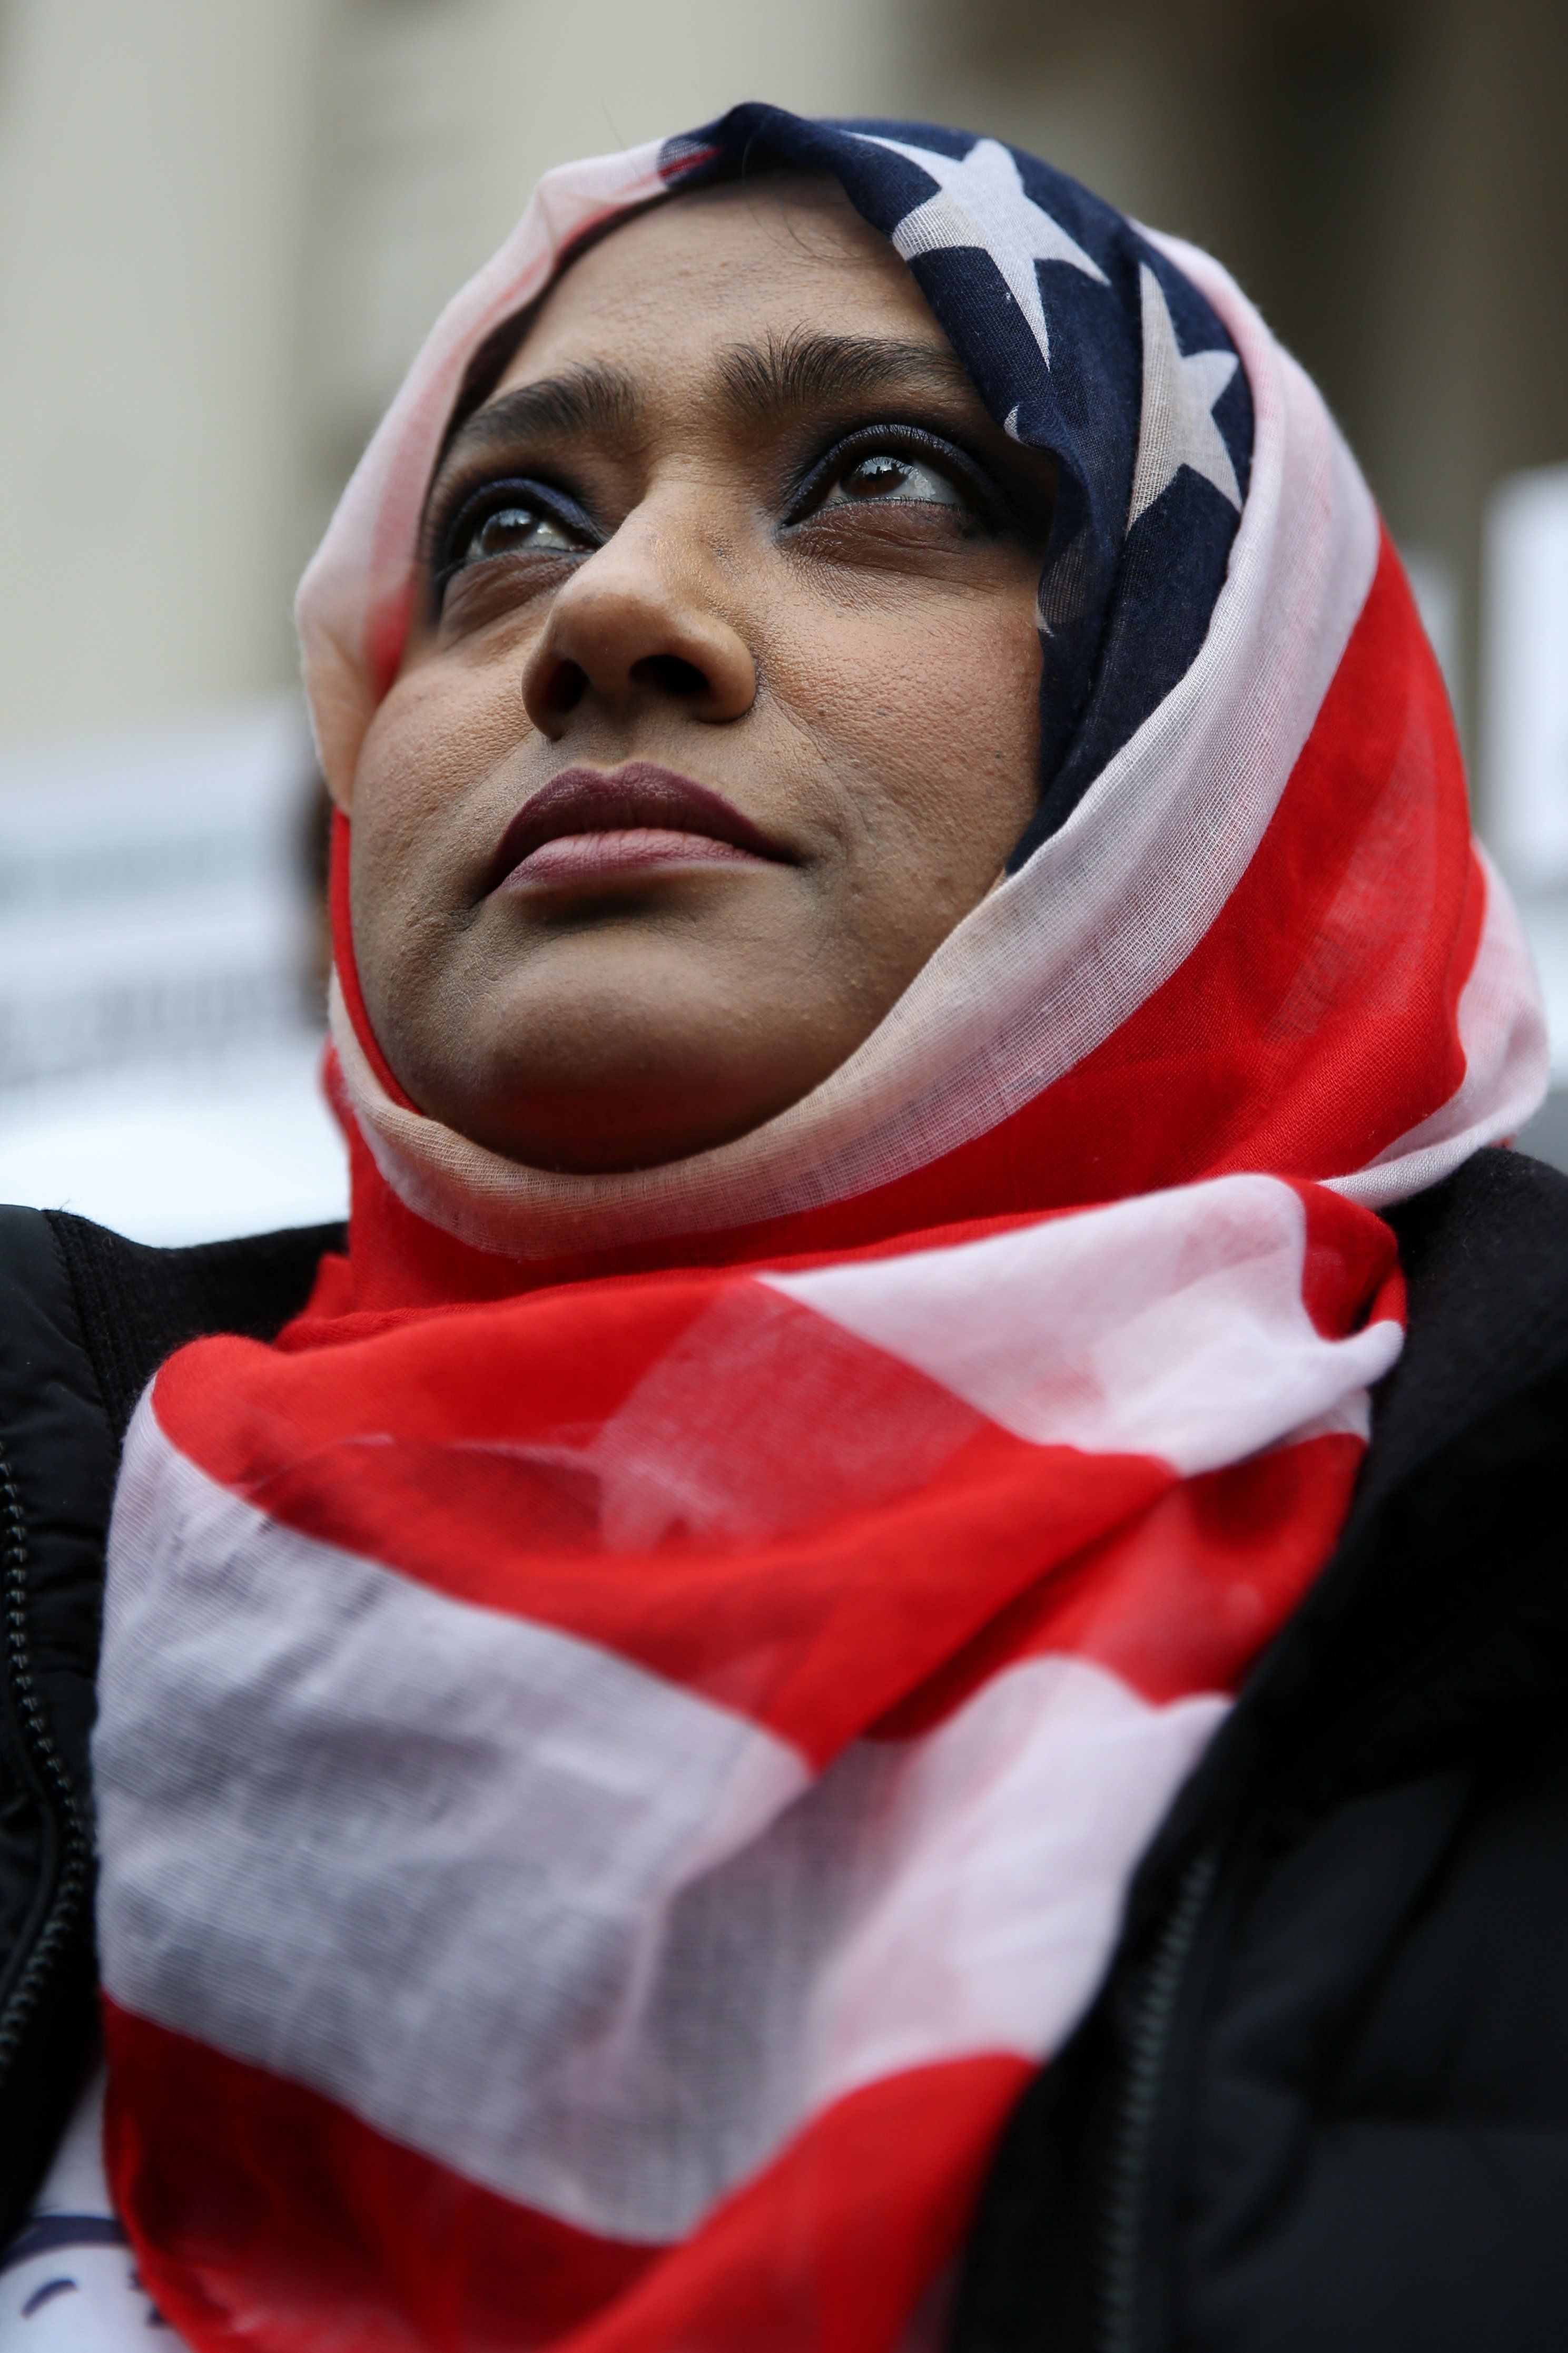 Muslim American Hoshneara Begum takes part in a World Hijab Day rally held in front of New York City Hall in Manhattan, New York, U.S., February 1, 2018. REUTERS/Amr Alfiky